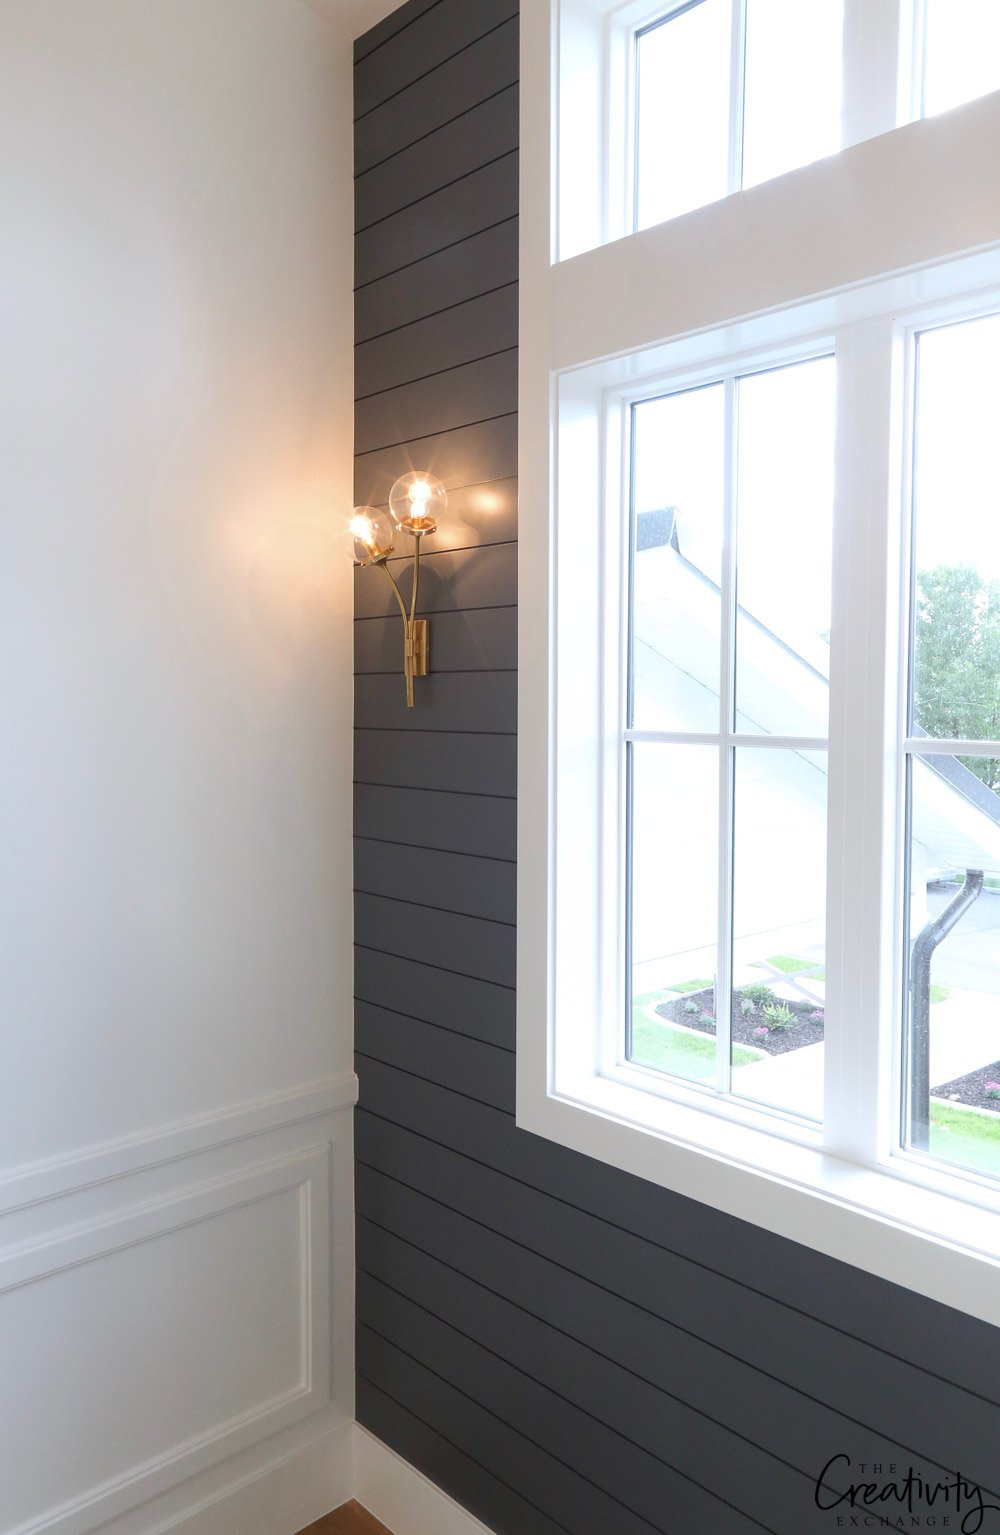 Wall paint color is Benjamin Moore Trout Gray